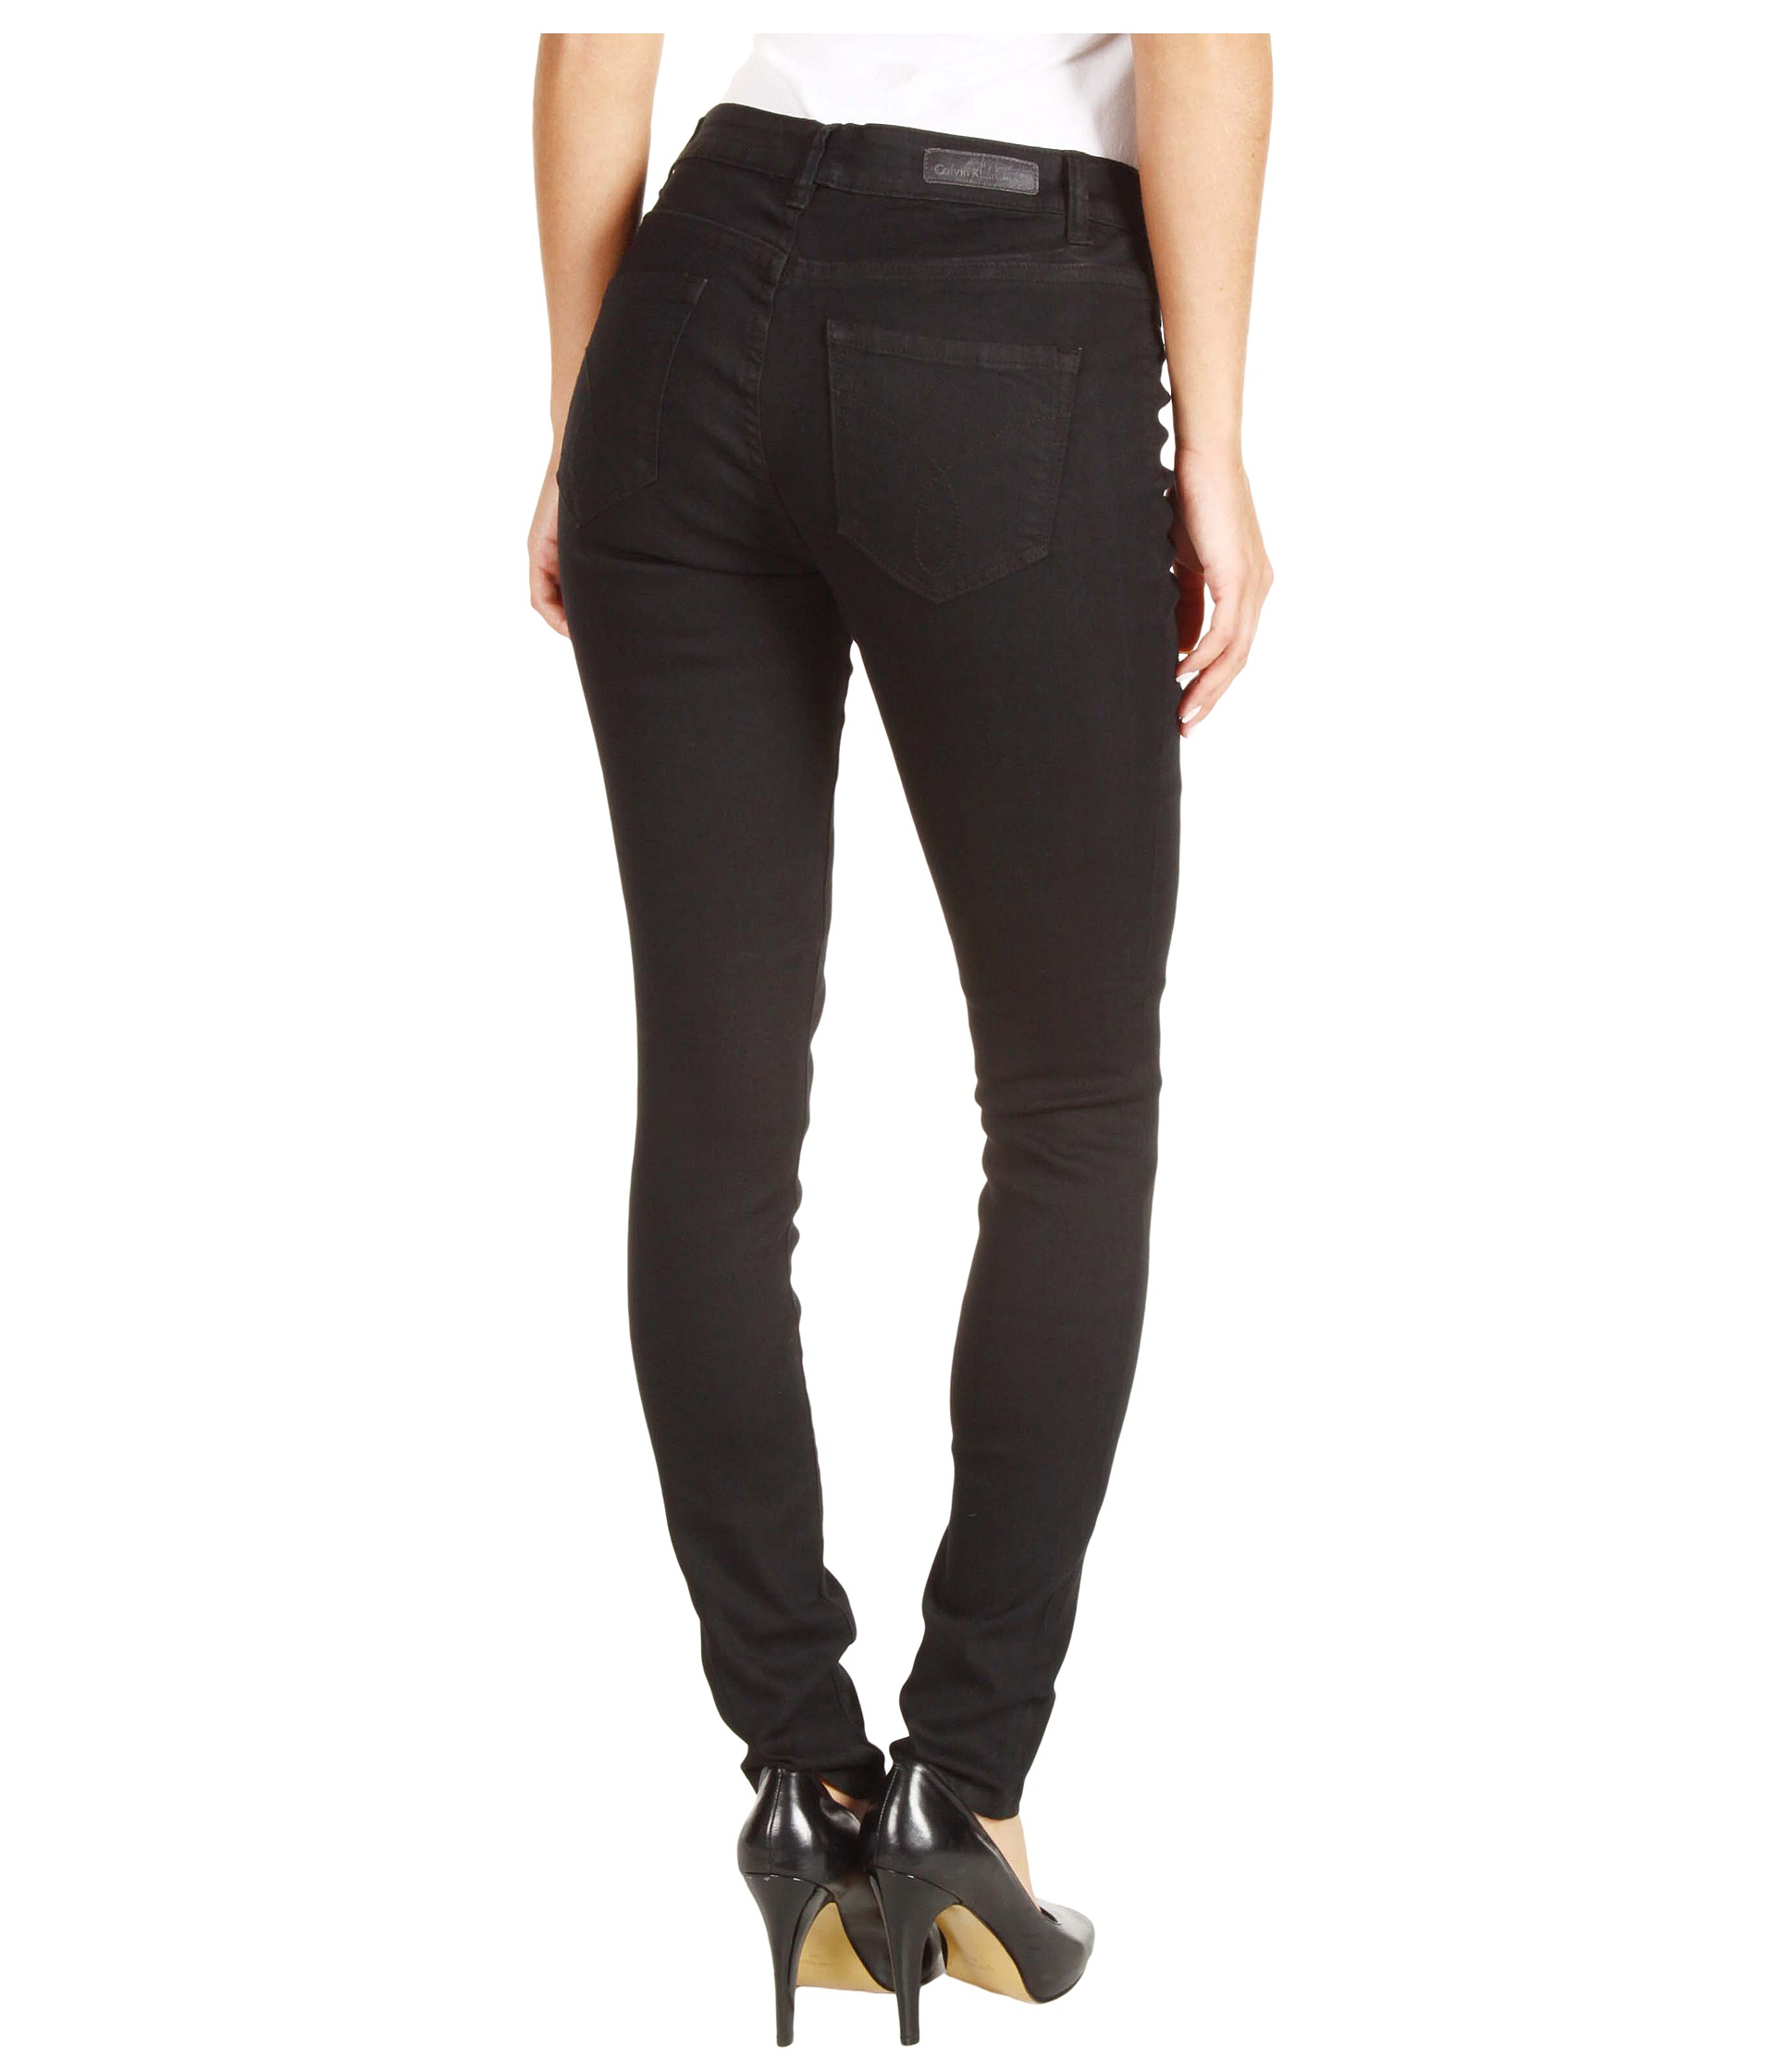 calvin klein jeans powerstretch denim legging in black shipped free at zappos. Black Bedroom Furniture Sets. Home Design Ideas